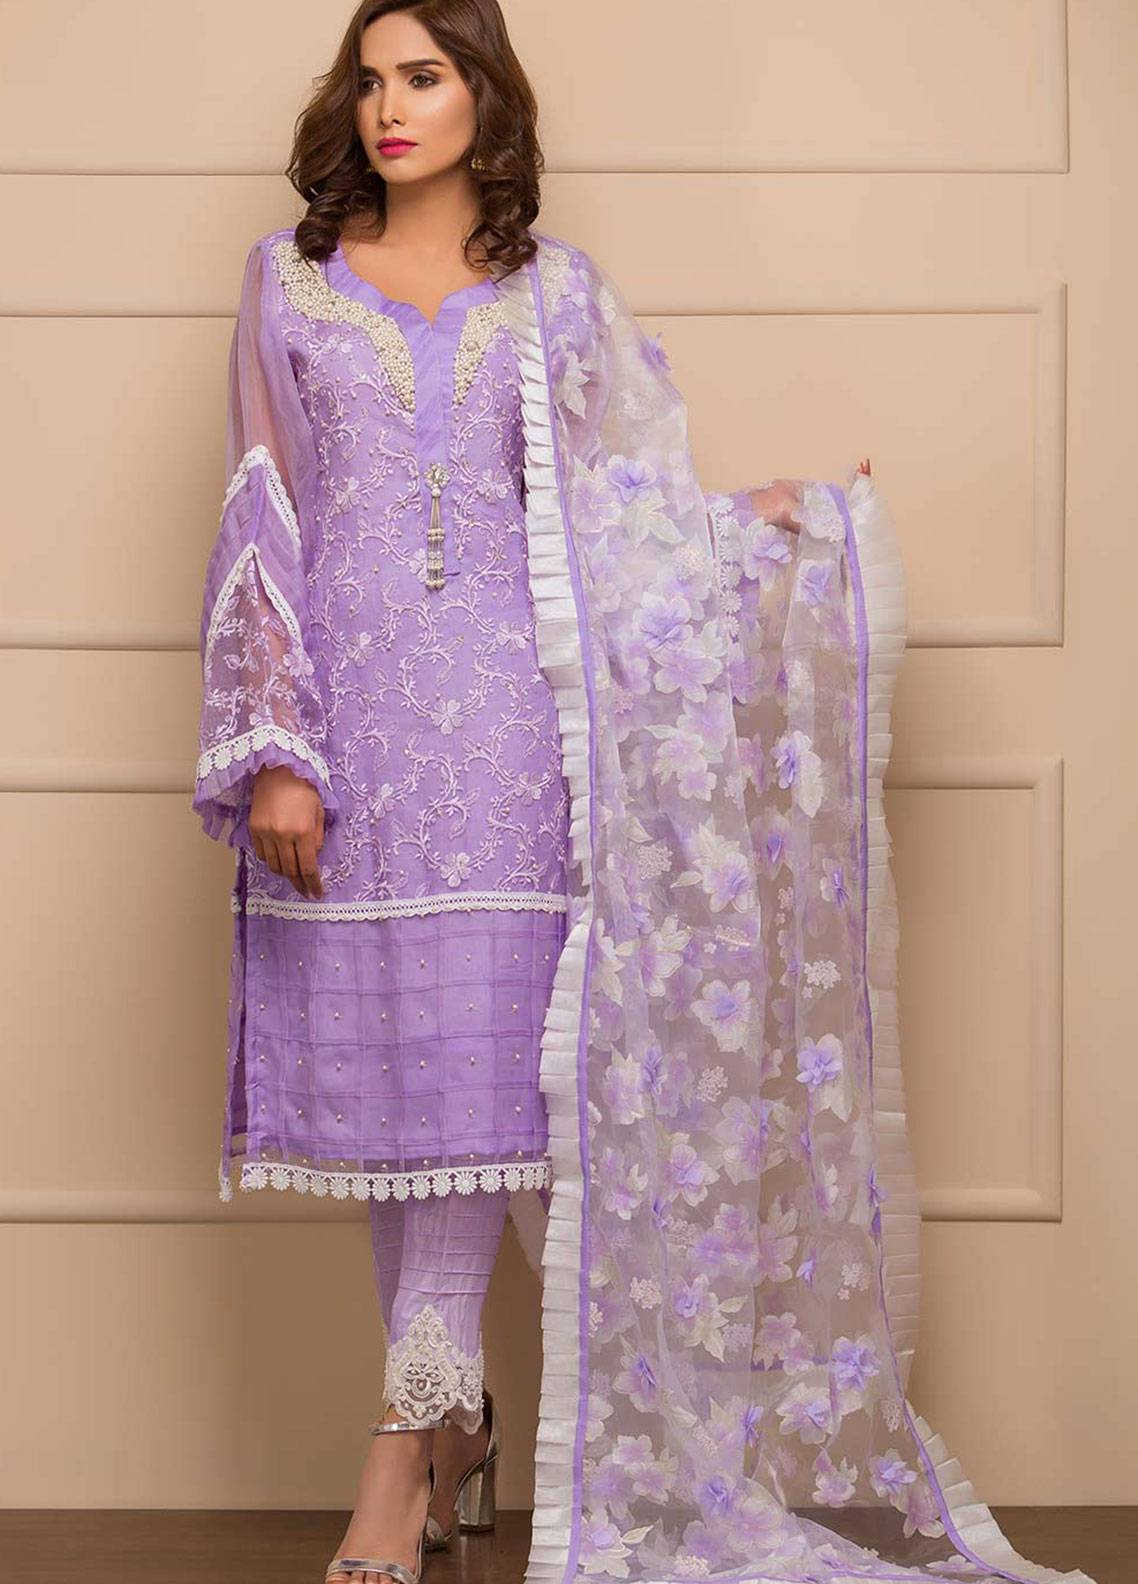 Chic Ophicial Embroidered Organza Stitched 3 Piece Suit Dusky Purple